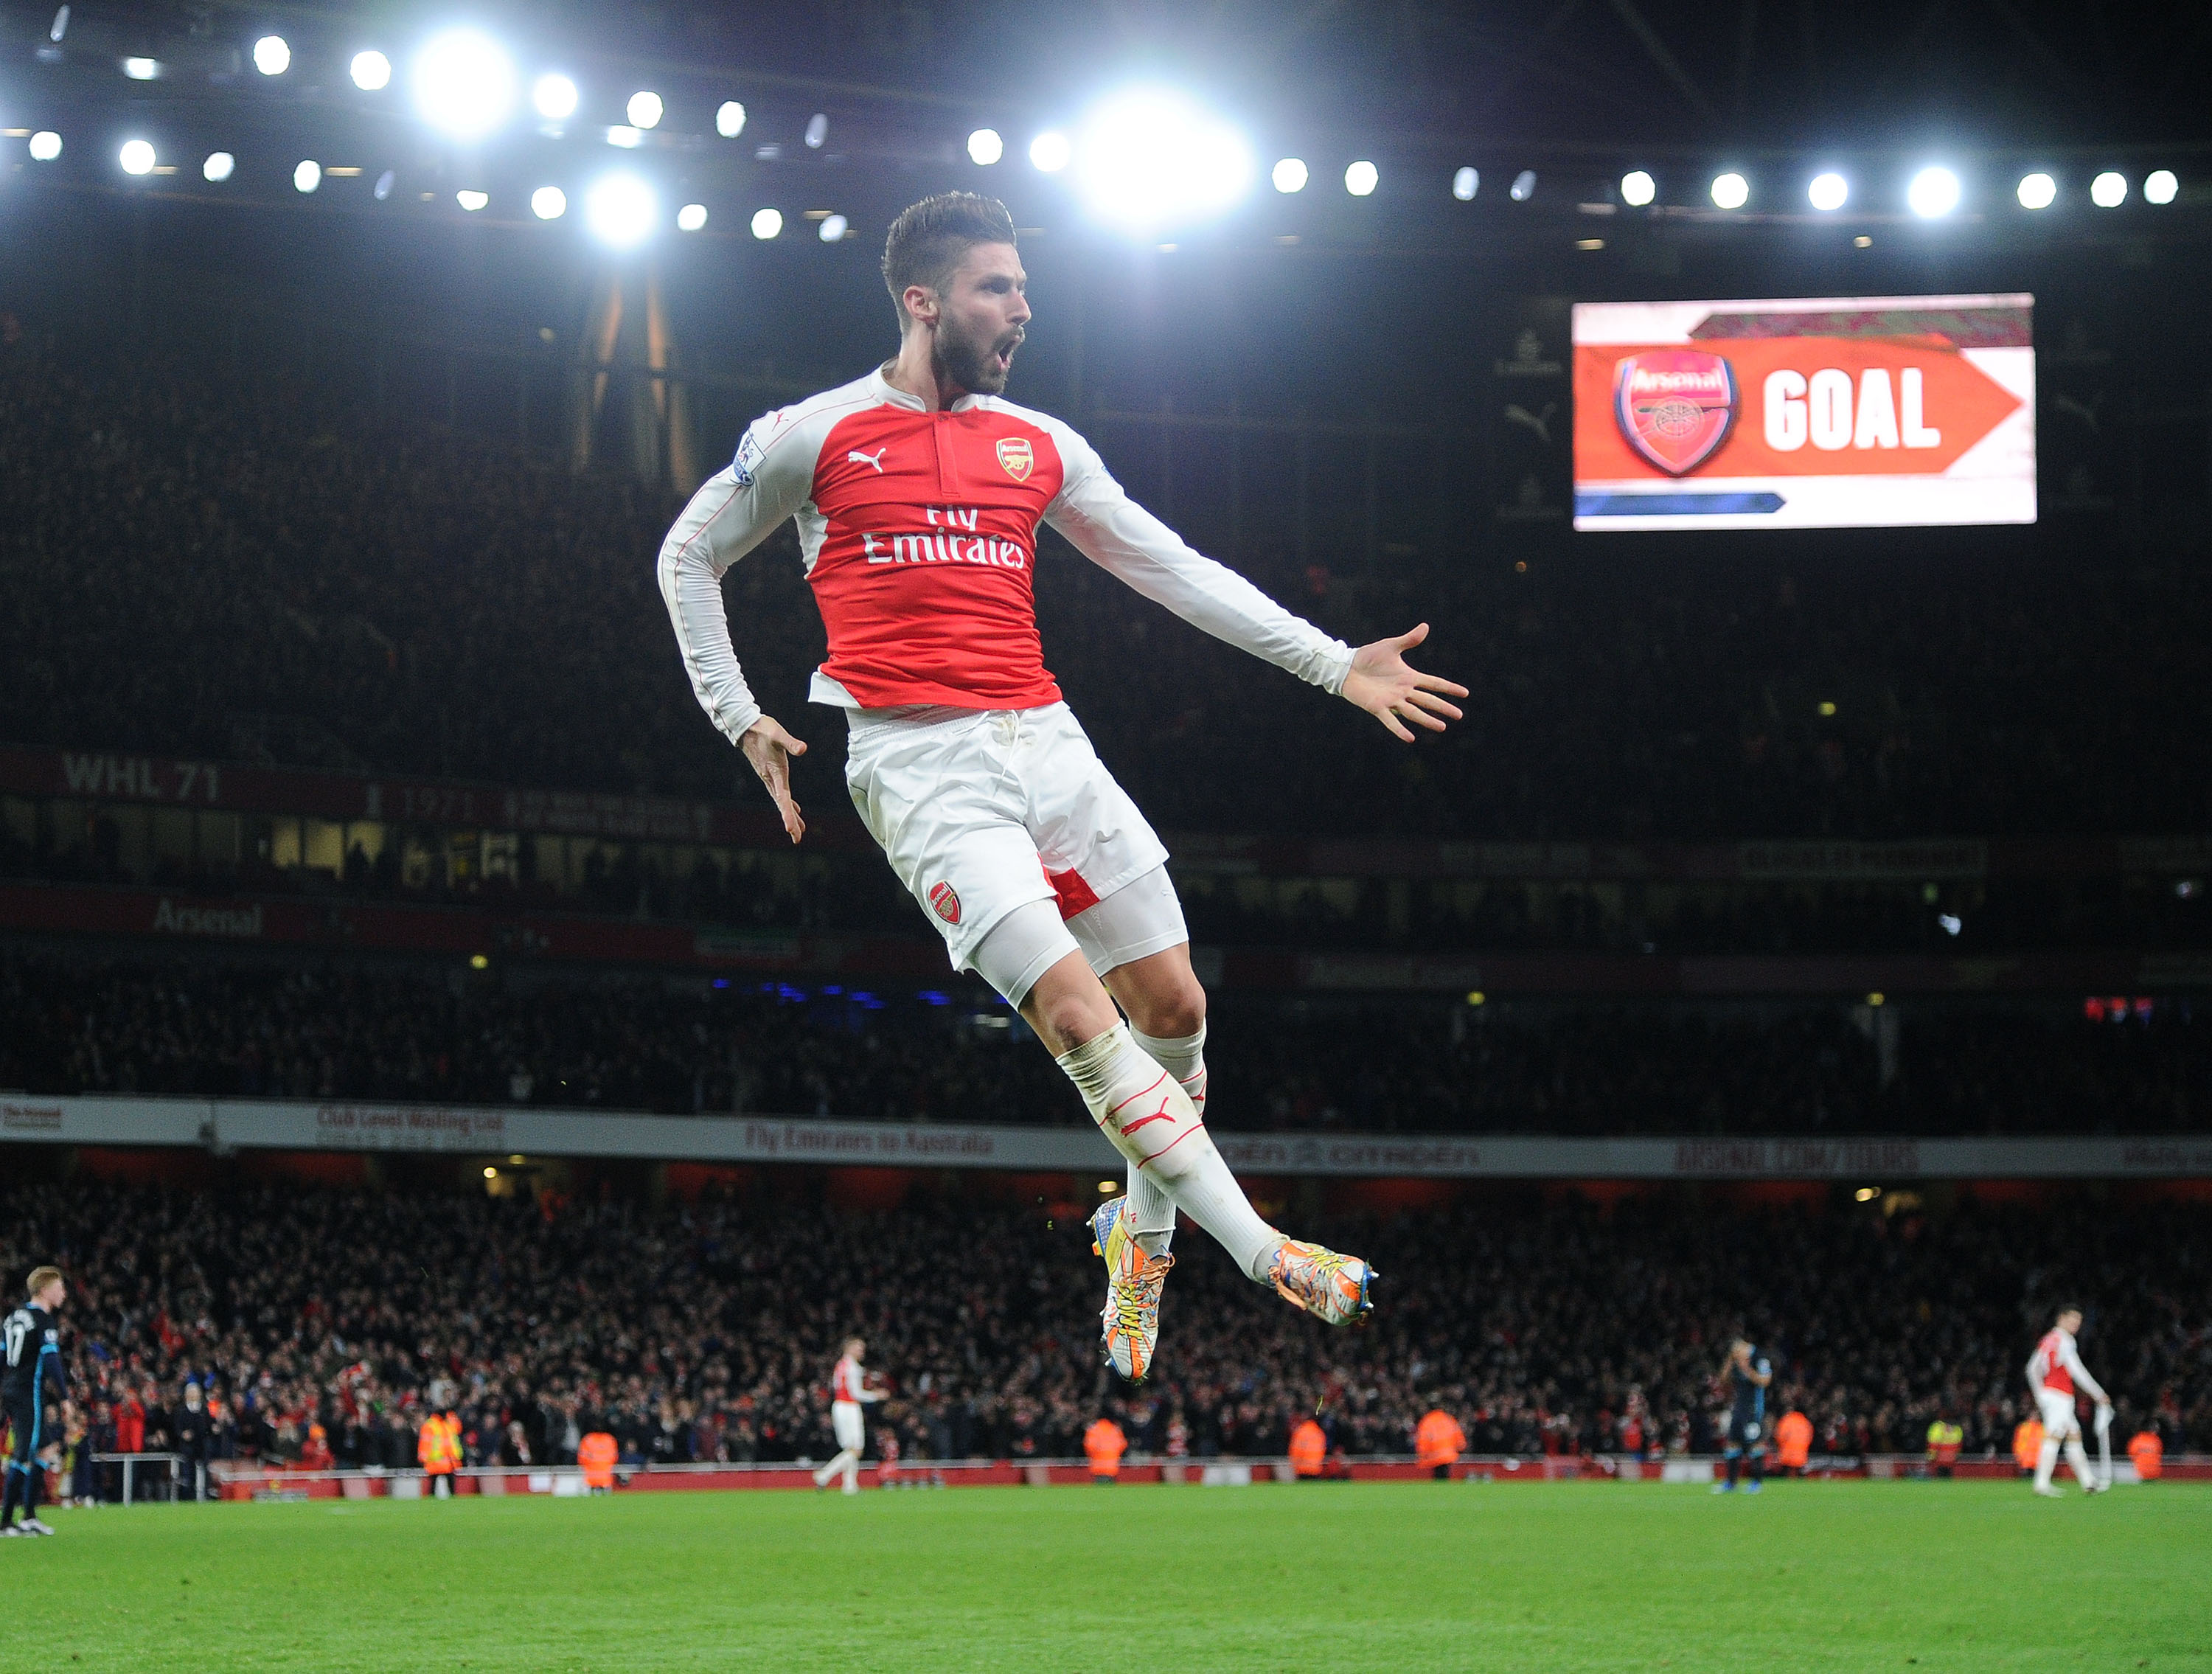 LONDON, ENGLAND - DECEMBER 21: Olivier Giroud celebrates scoring Arsenal's 2nd goal during the Barclays Premier League match between Arsenal and Manchester City at Emirates Stadium on December 21, 2015 in London, England. (Photo by David Price/Arsenal FC via Getty Images) *** Local Caption *** Olivier Giroud